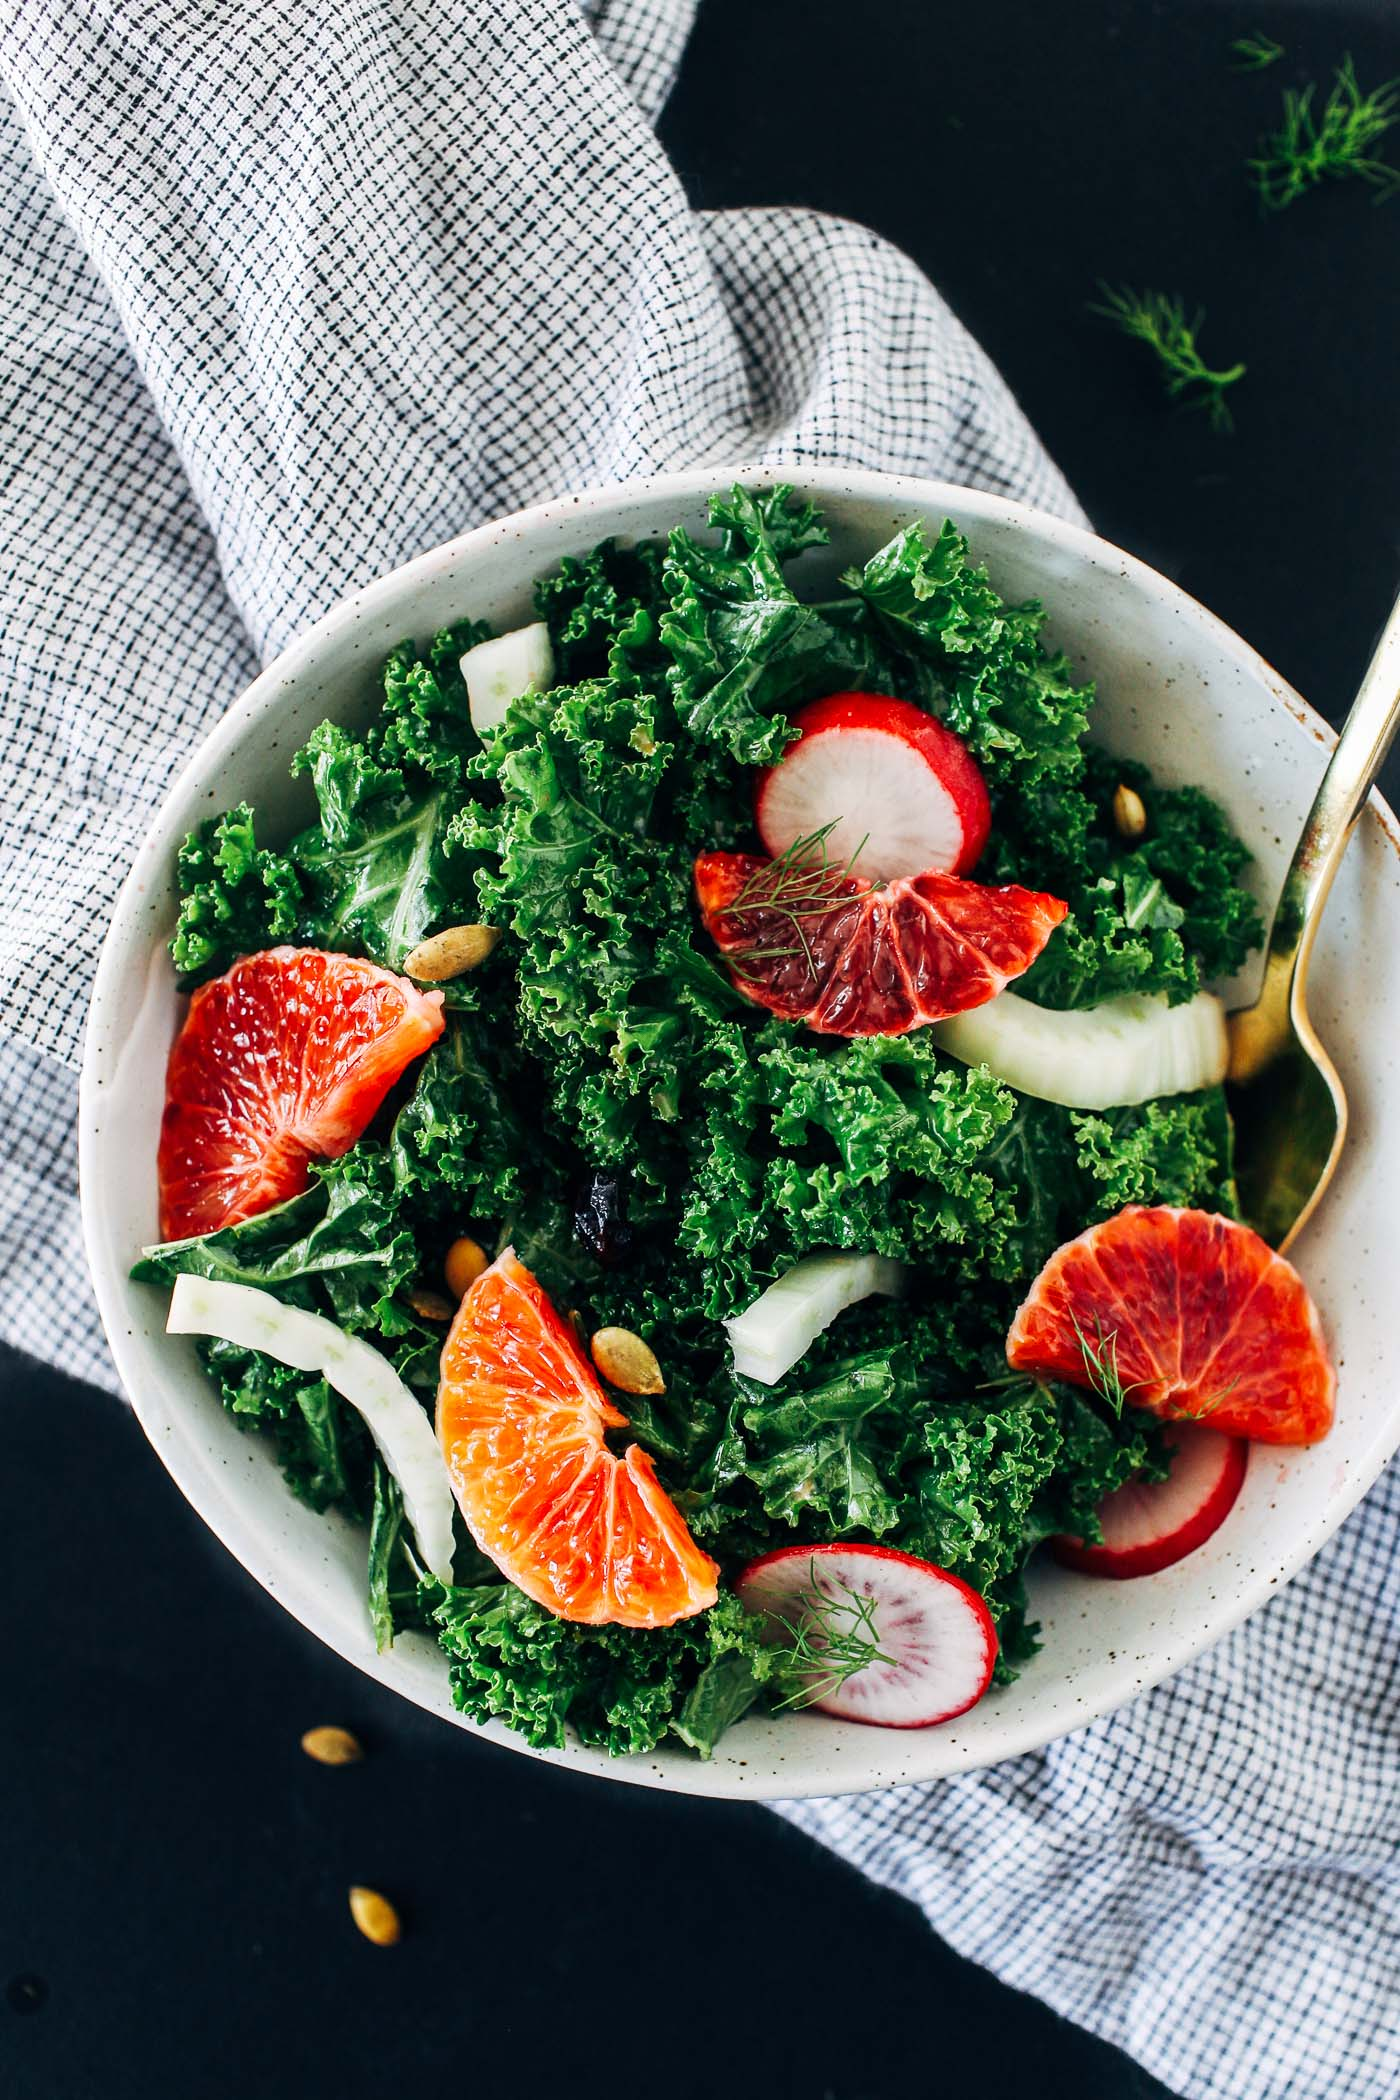 Make-Ahead Recipes | Meal Prep Guide | Winter Kale Salad